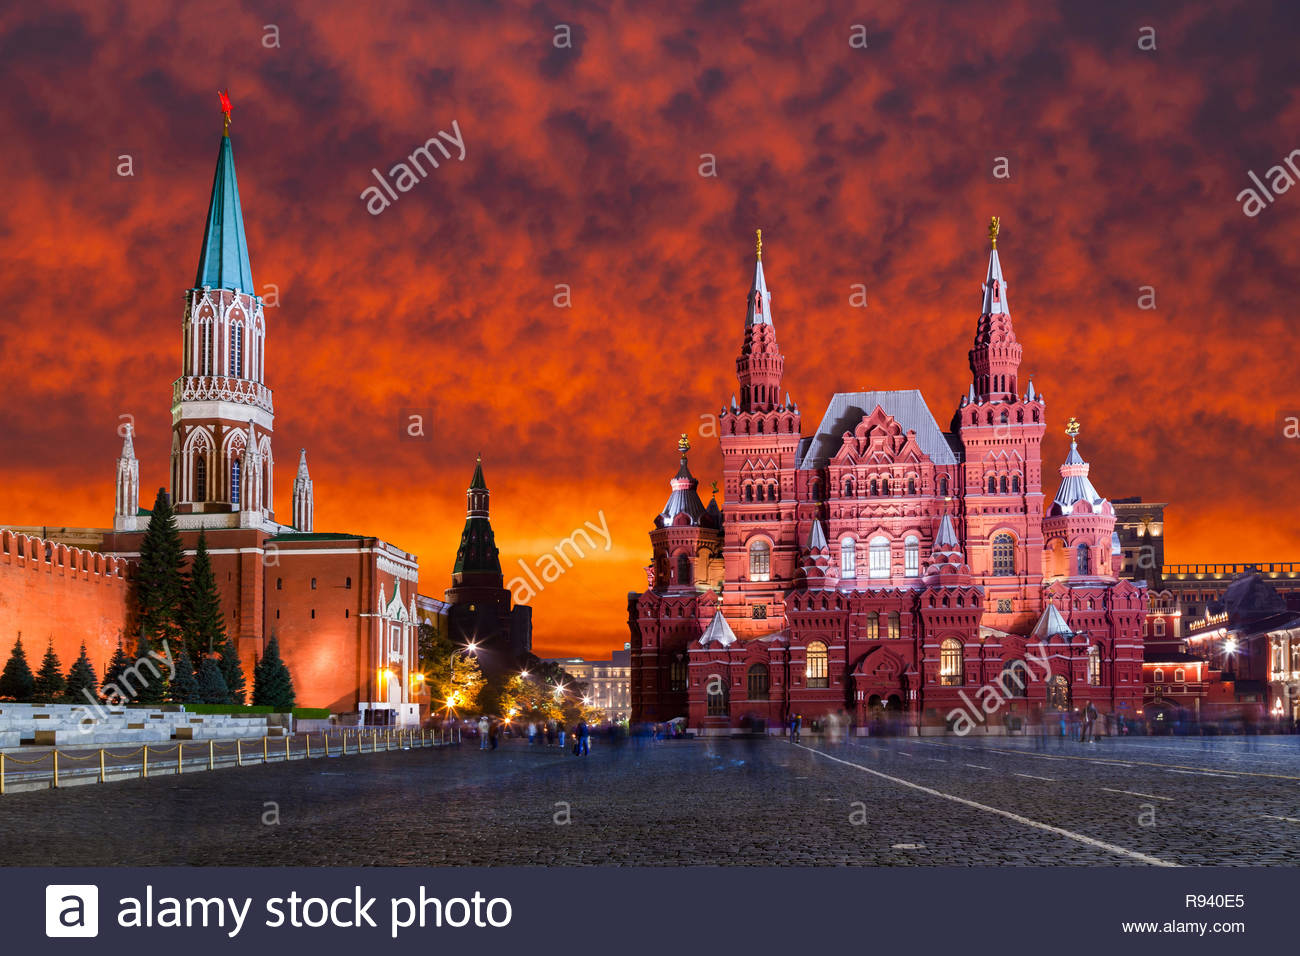 Red Square, Moscow Kremlin at sunset. Moscow, Russia - Stock Image